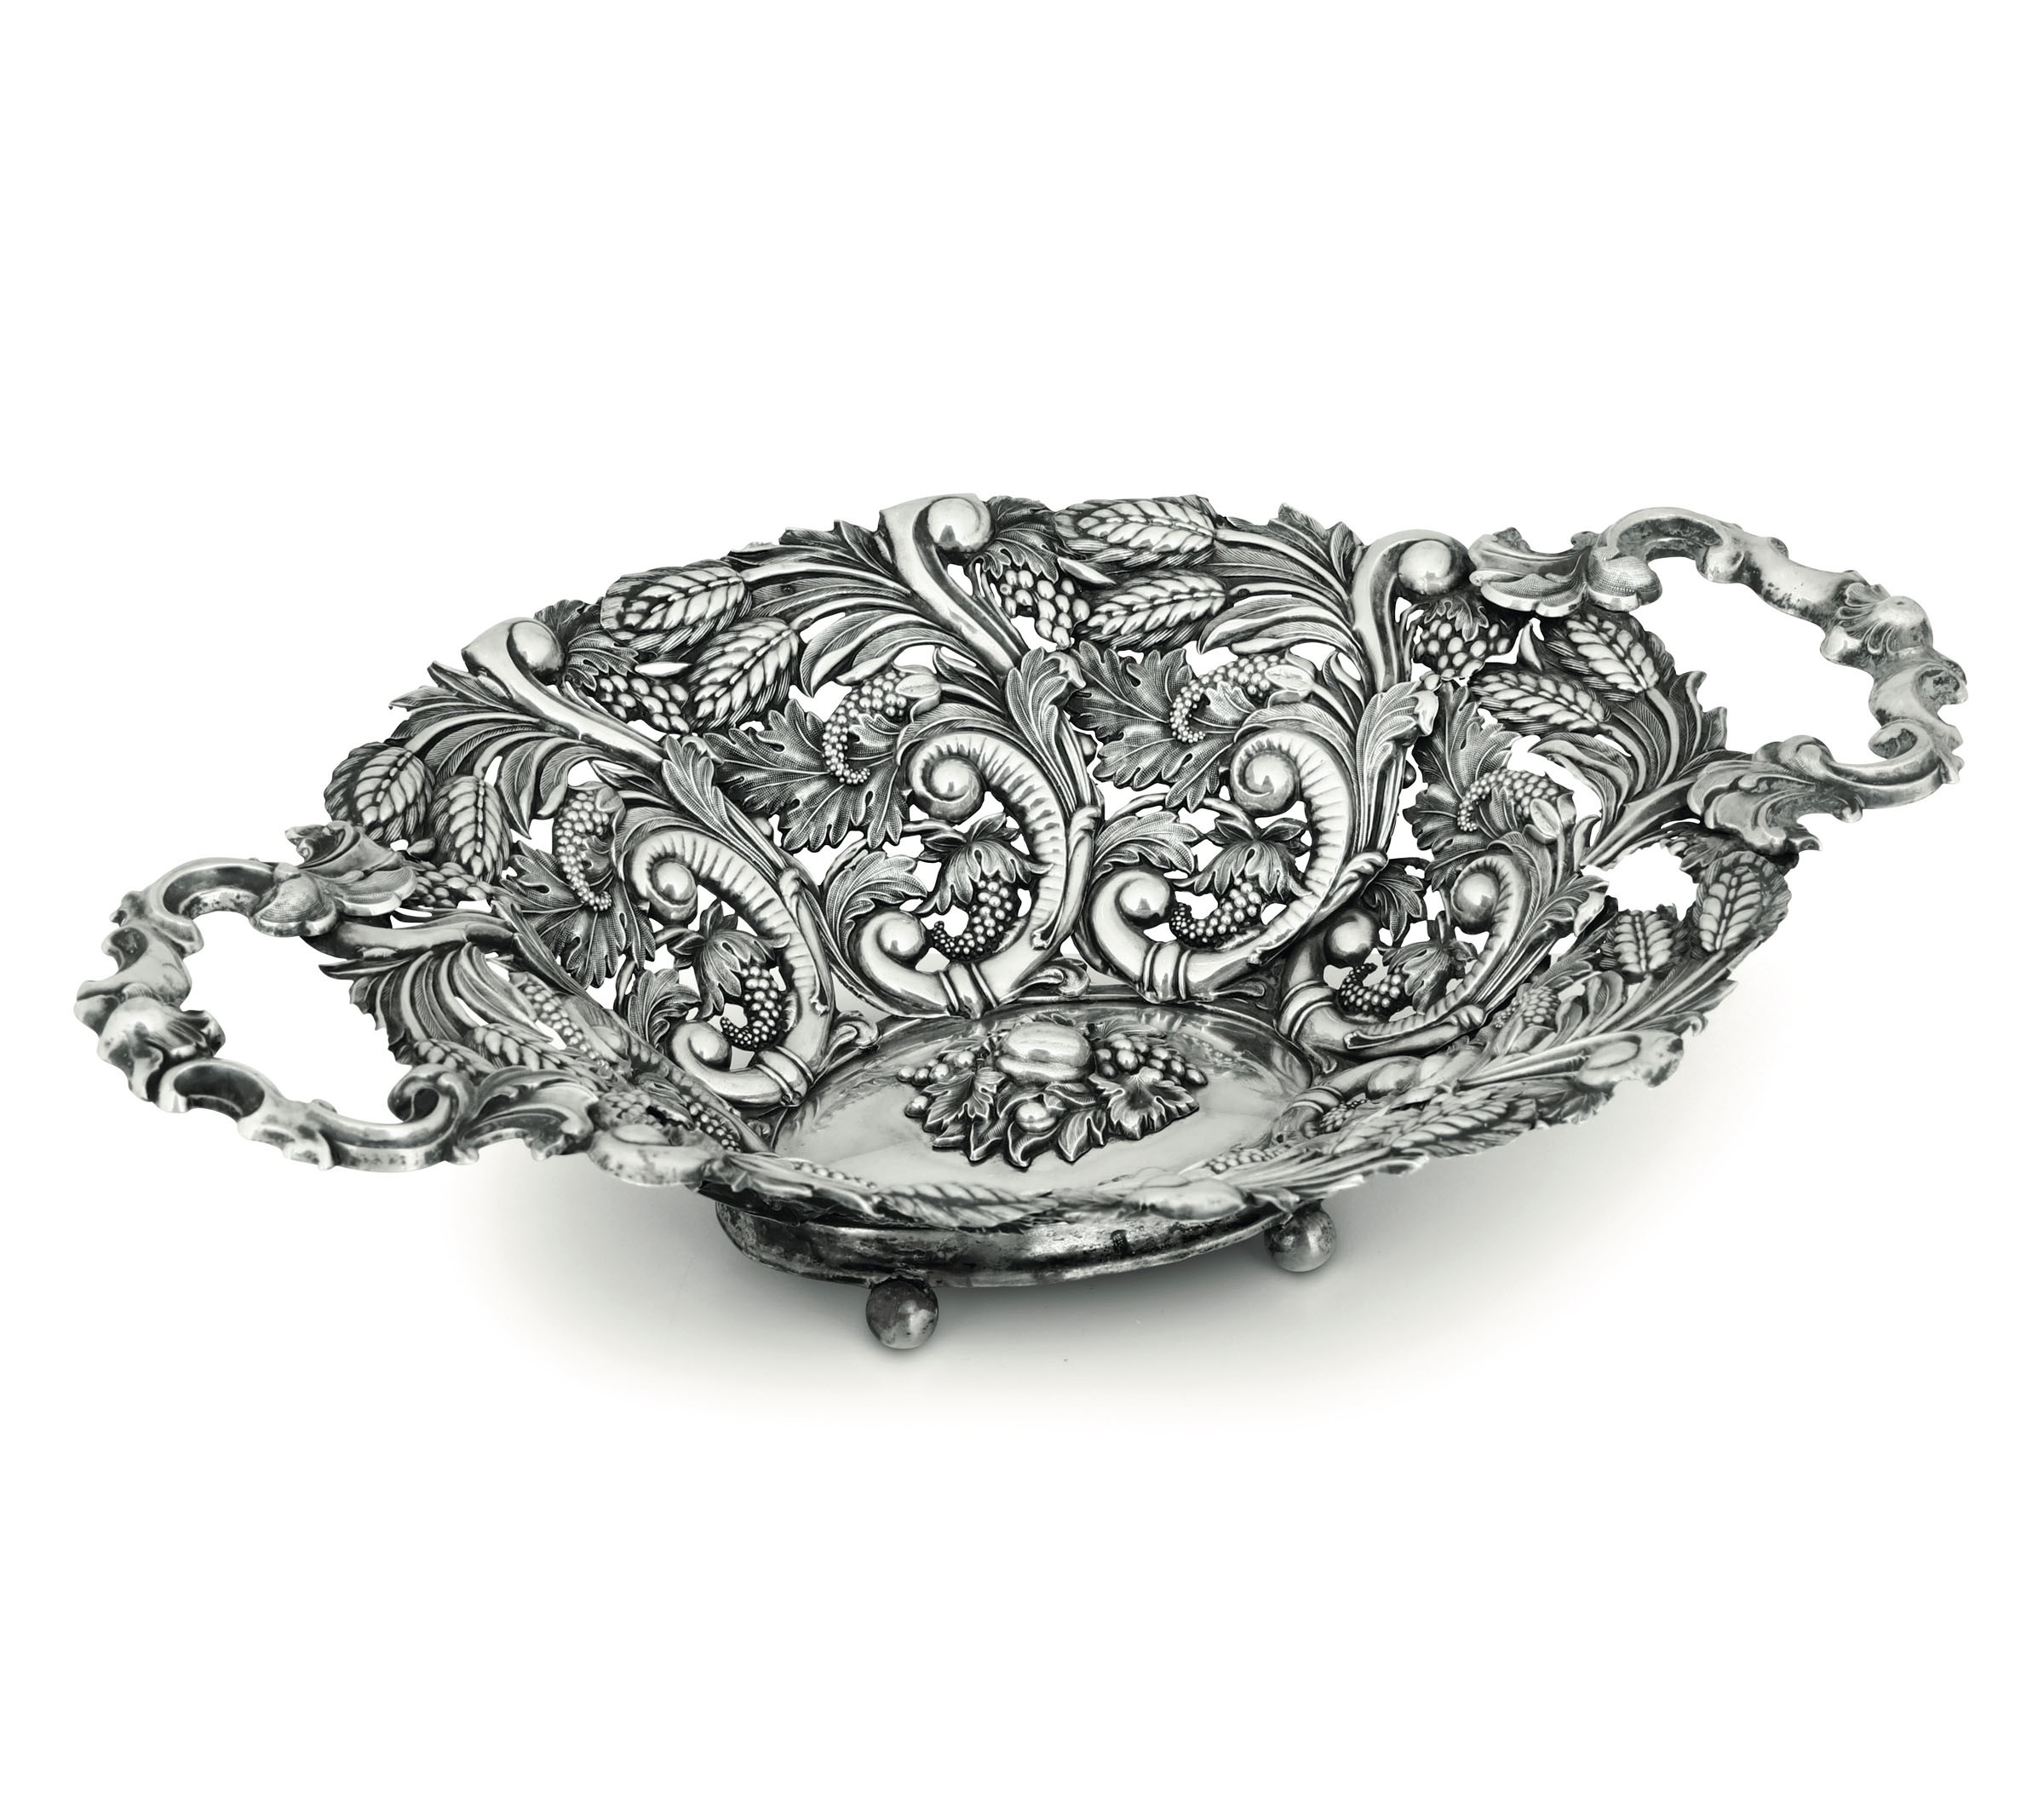 Lot 54 - A silver basket, Austria-Hungary, 1800s - Molten, embossed, perforated and chiselled [...]